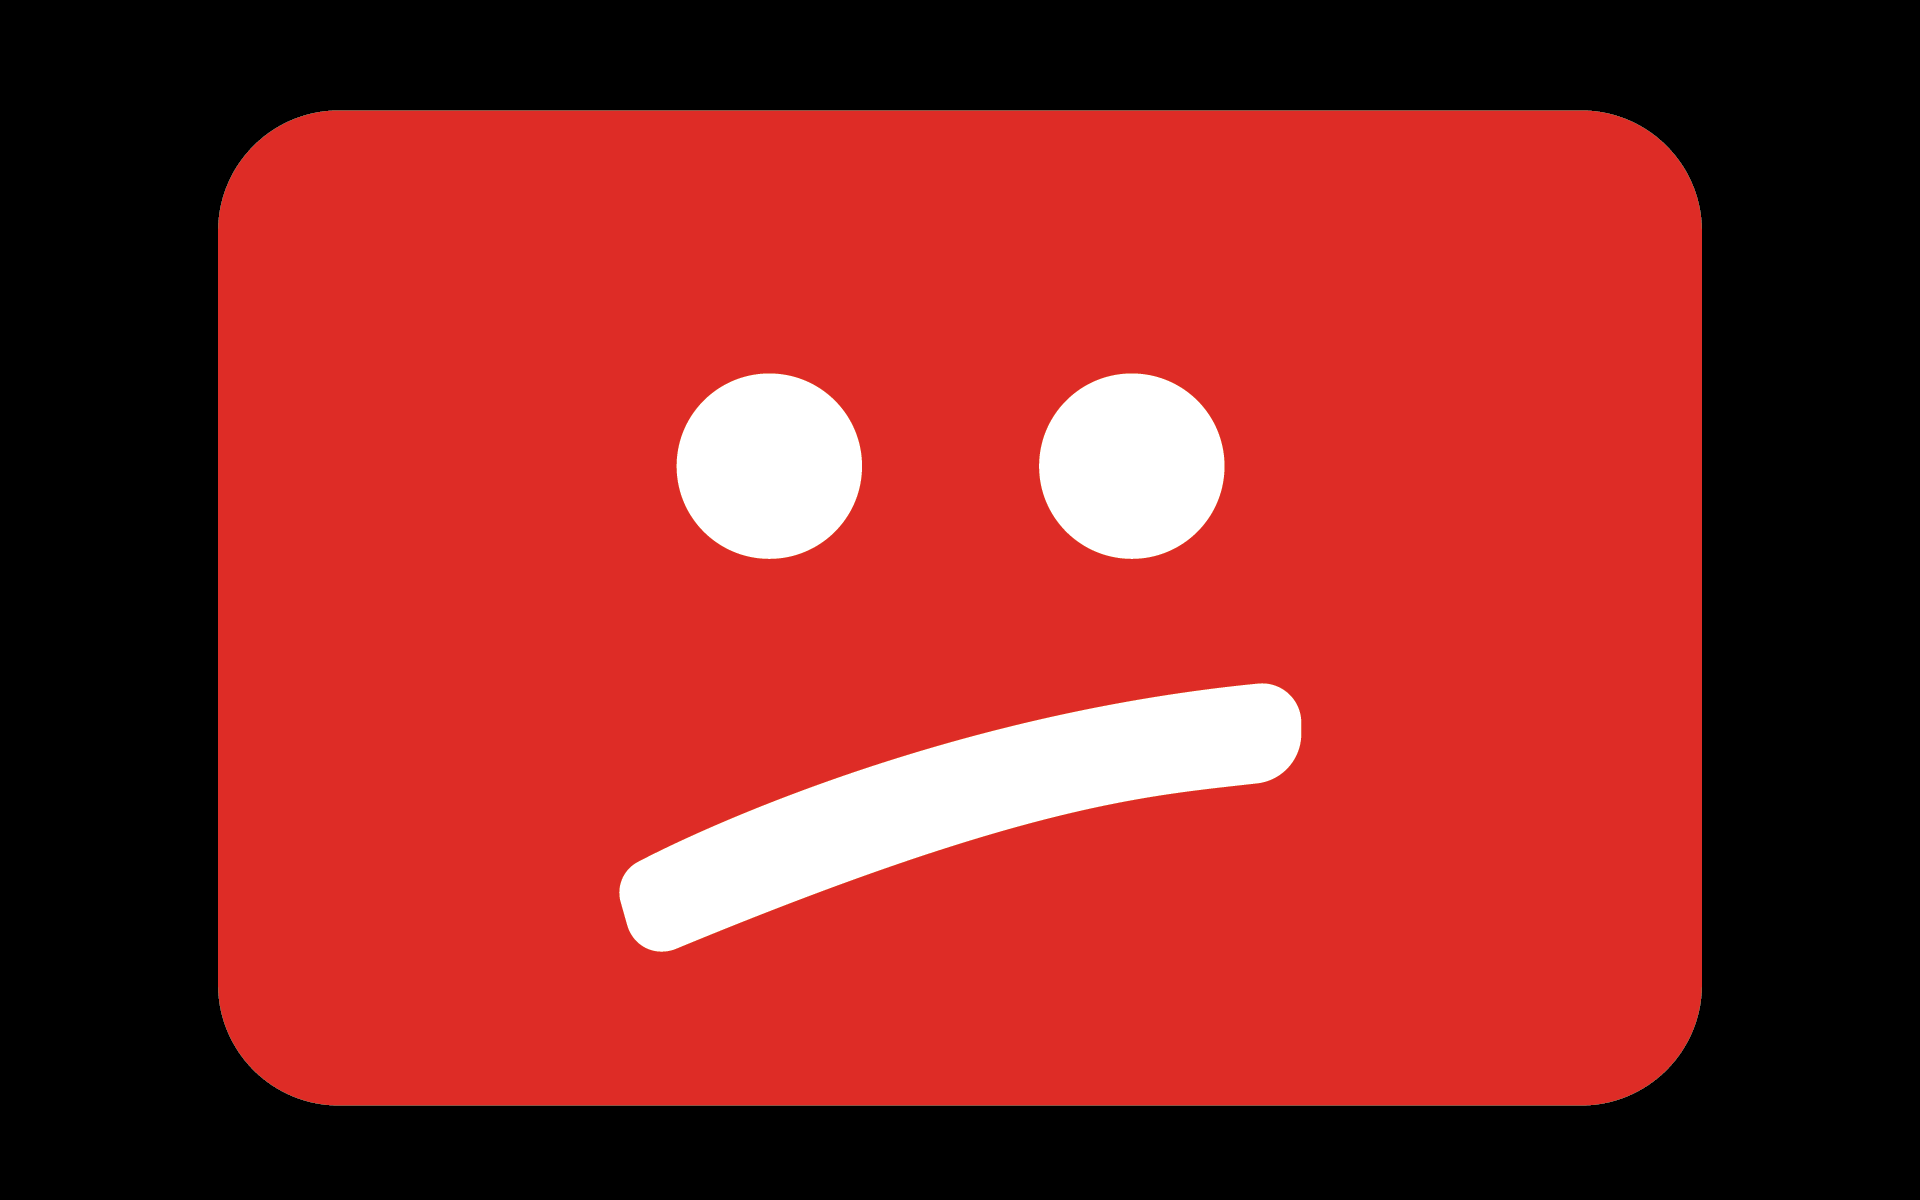 The YouTube logo with a :/ face.